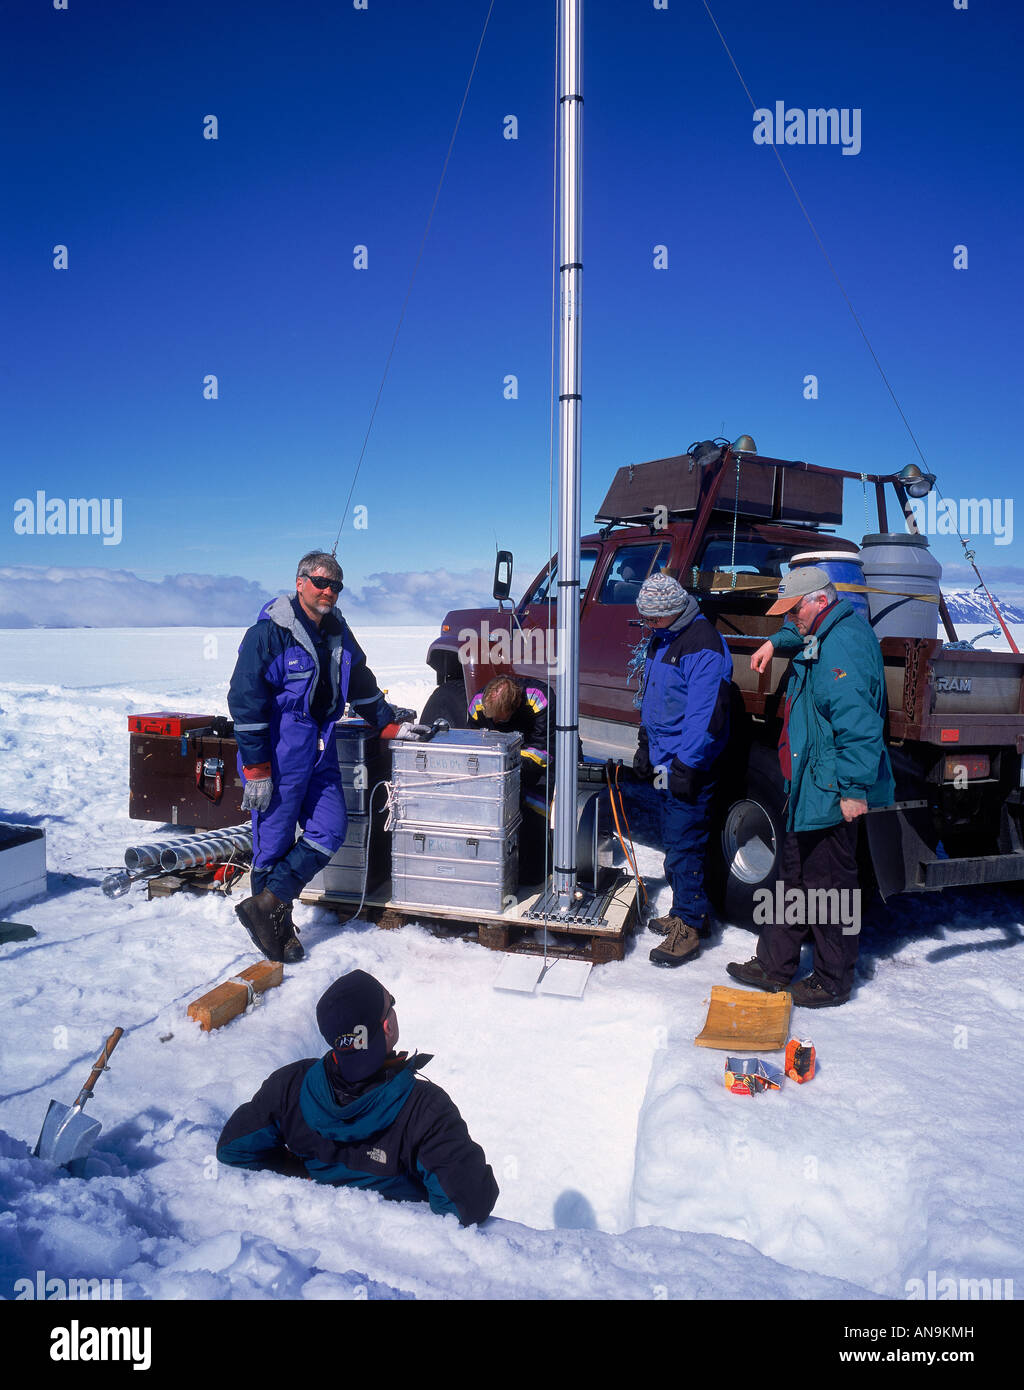 Scientist taking glacial measurements Langjokull Ice cap, Iceland - Stock Image